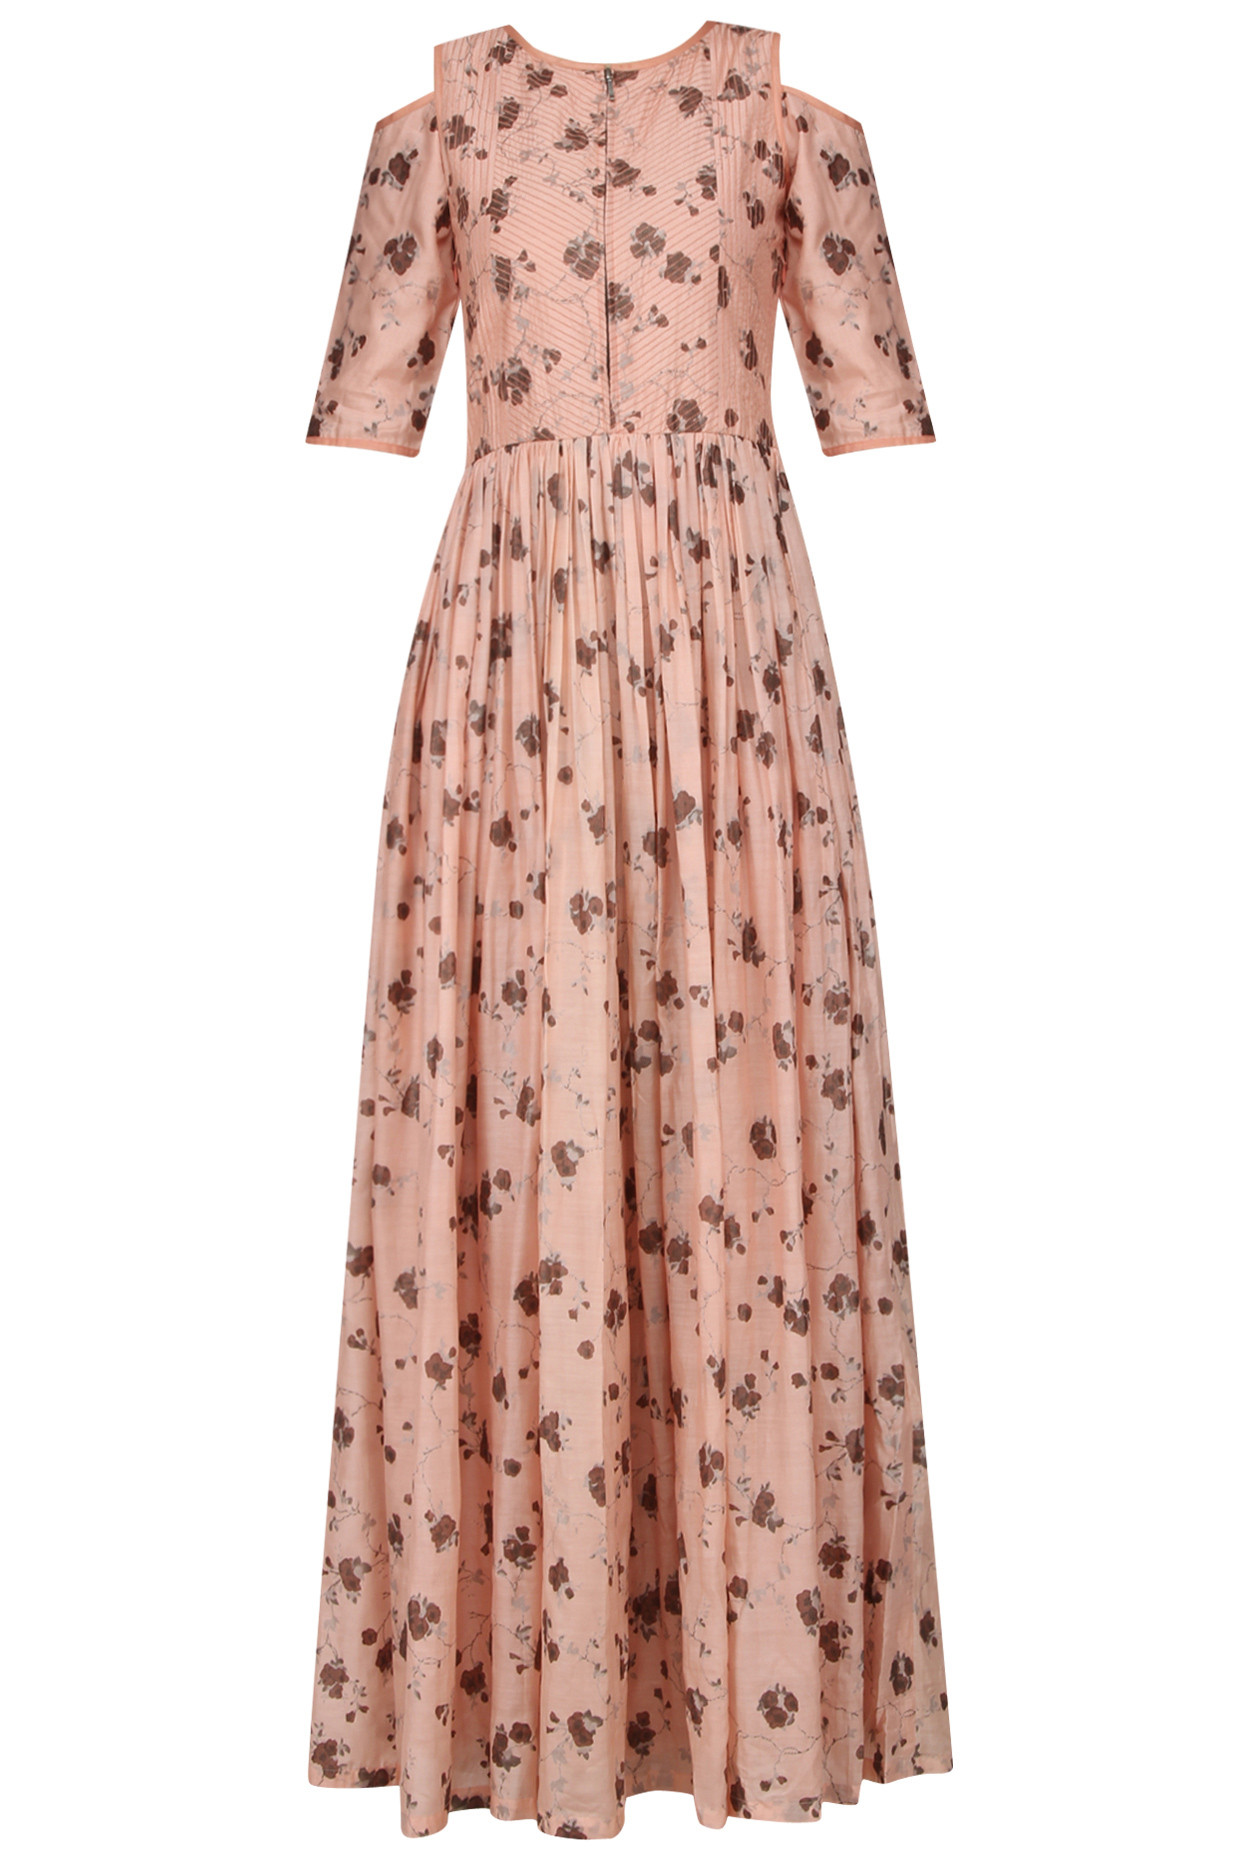 Blush Pink Cracker Print Cold Shoulder Pleated Maxi Dress by Pinnacle by Shruti Sancheti